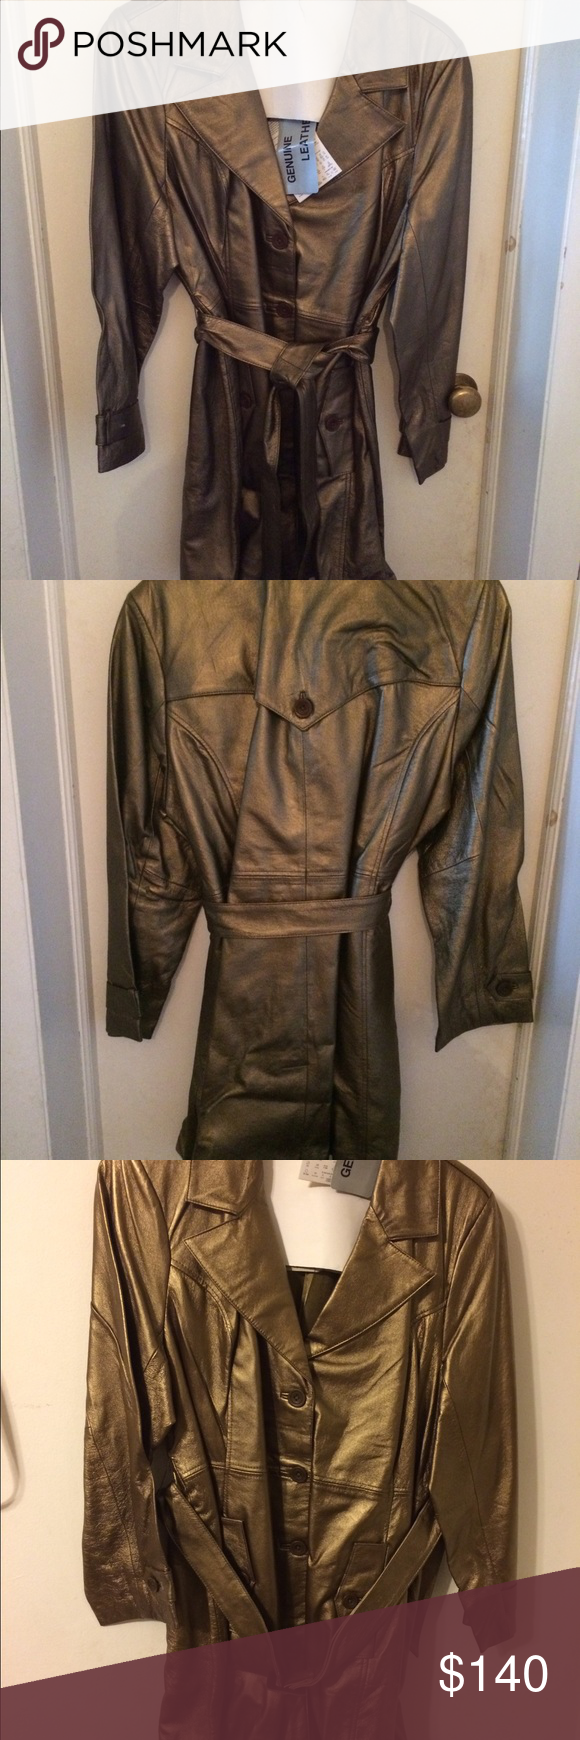 Centigrade Genuine Leather Trench Coat Brand New With Tags Never Worn Glove Leather Coat Measures 37 Long From Clothes Design Fashion Design Beautiful Coat [ 1740 x 580 Pixel ]